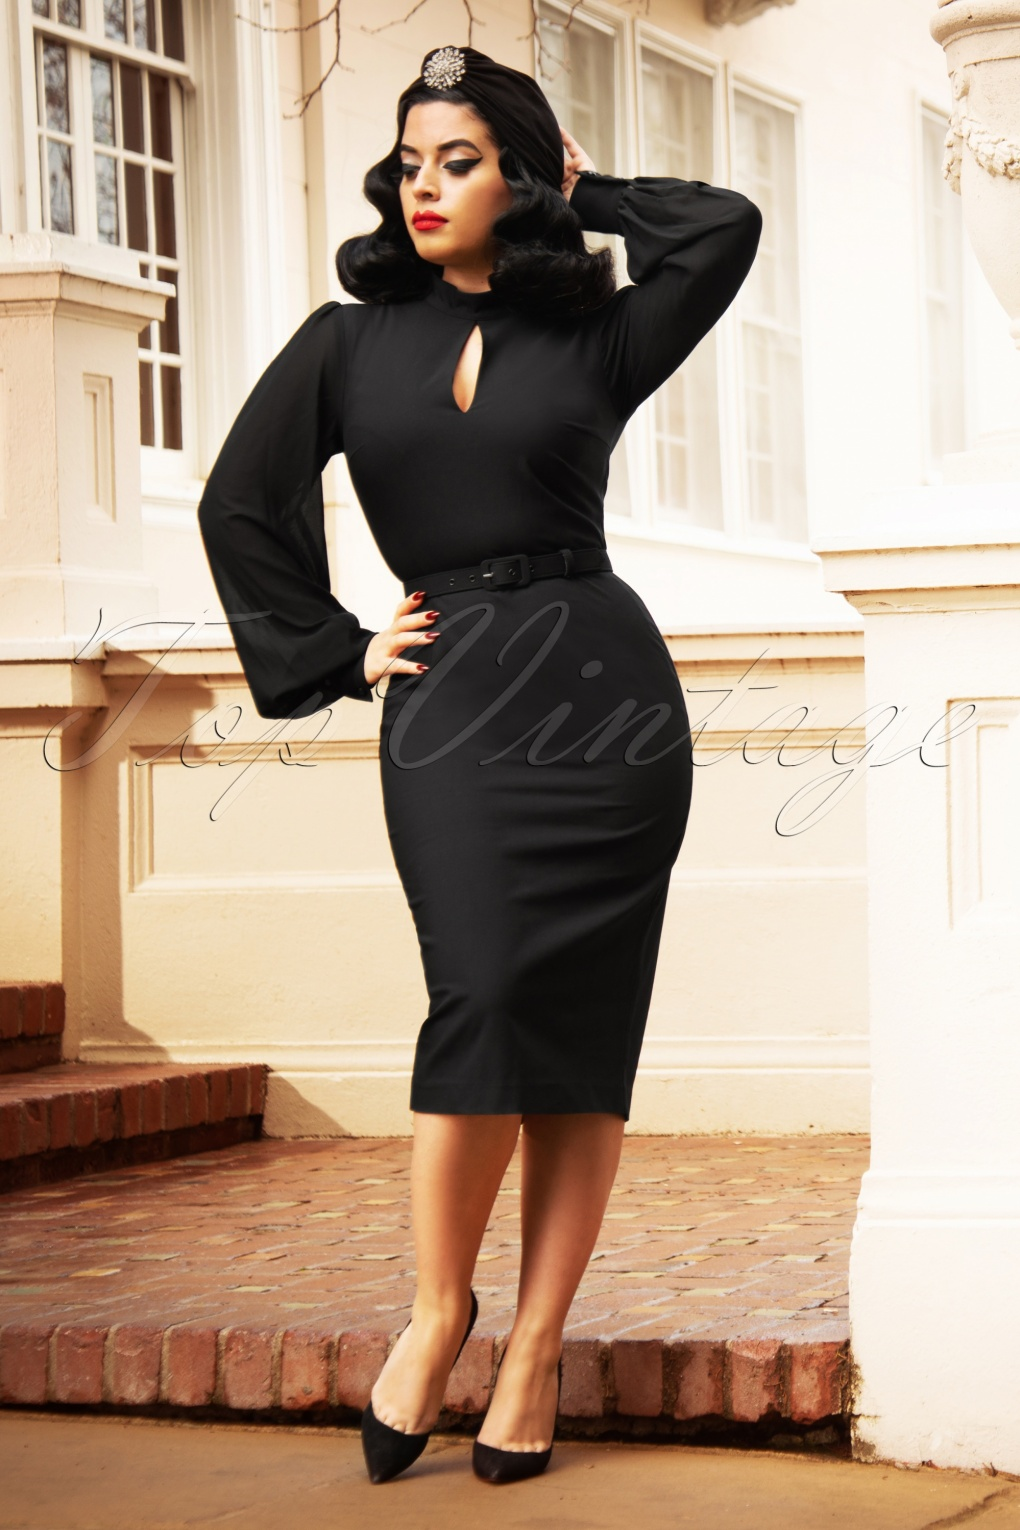 Rockabilly Dresses | Rockabilly Clothing | Viva Las Vegas The Gloria Pencil Dress in Black £96.74 AT vintagedancer.com